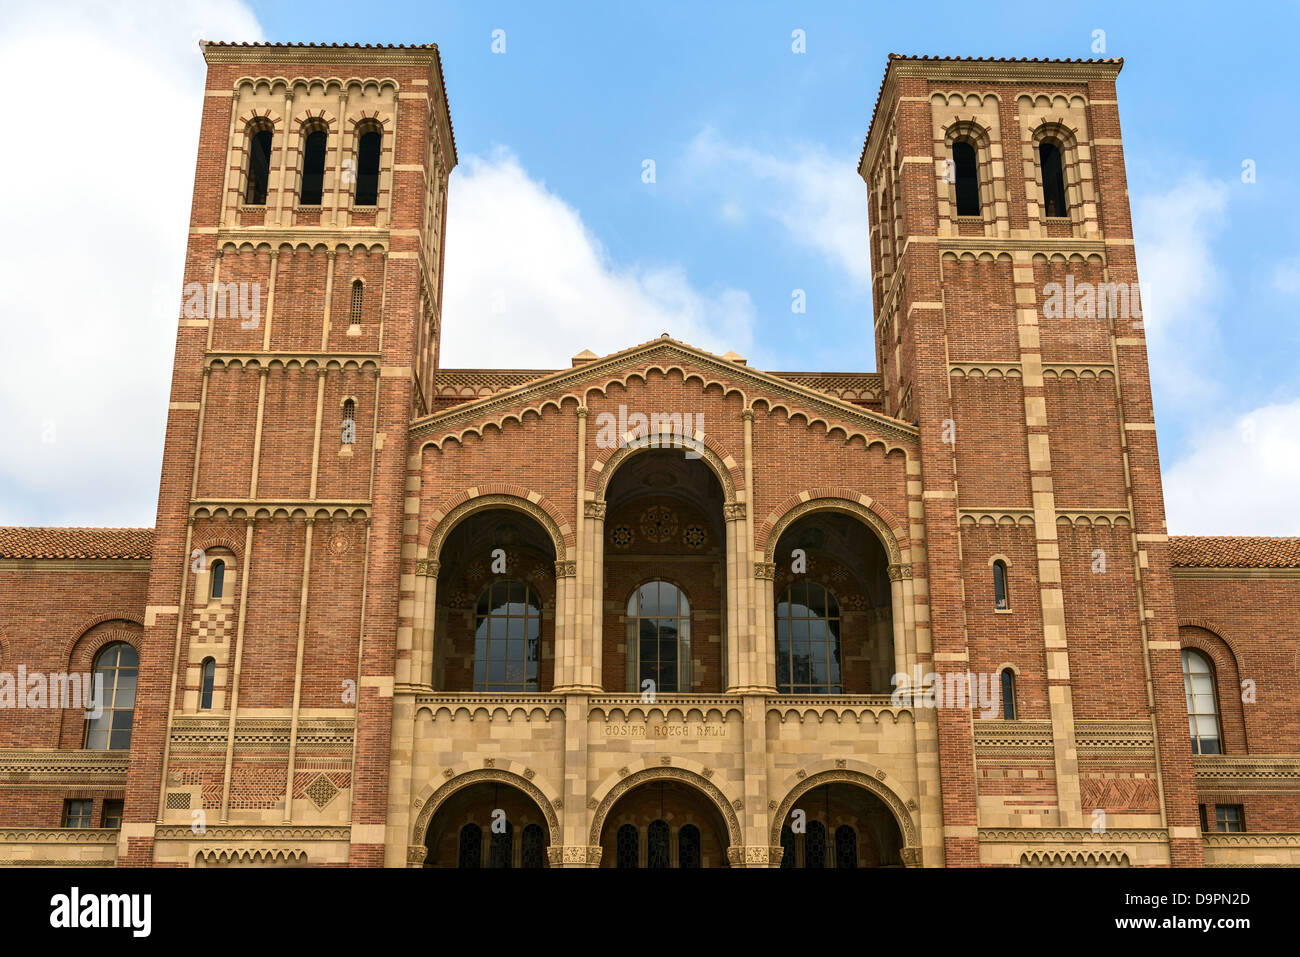 The famous Royce hall of UCLA, the University of California, Los Angeles. Stock Photo